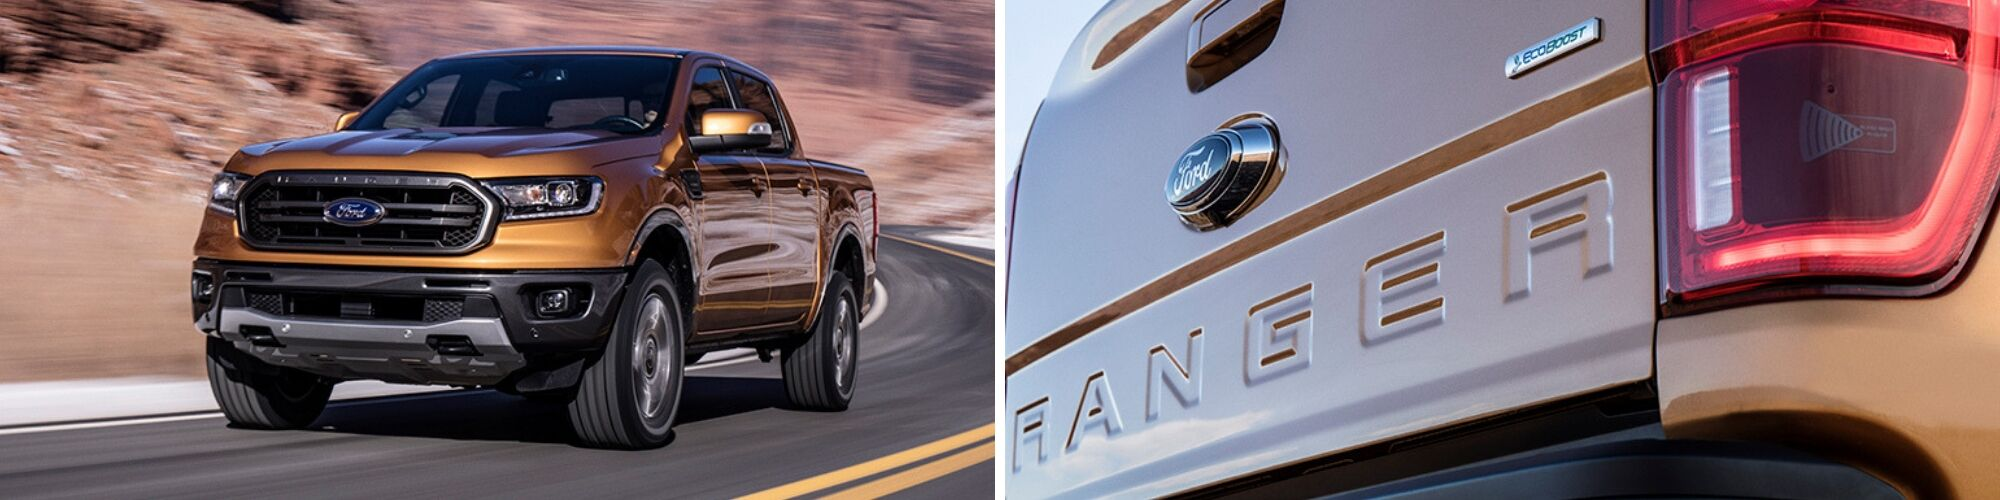 2019 ford ranger driving and rear view